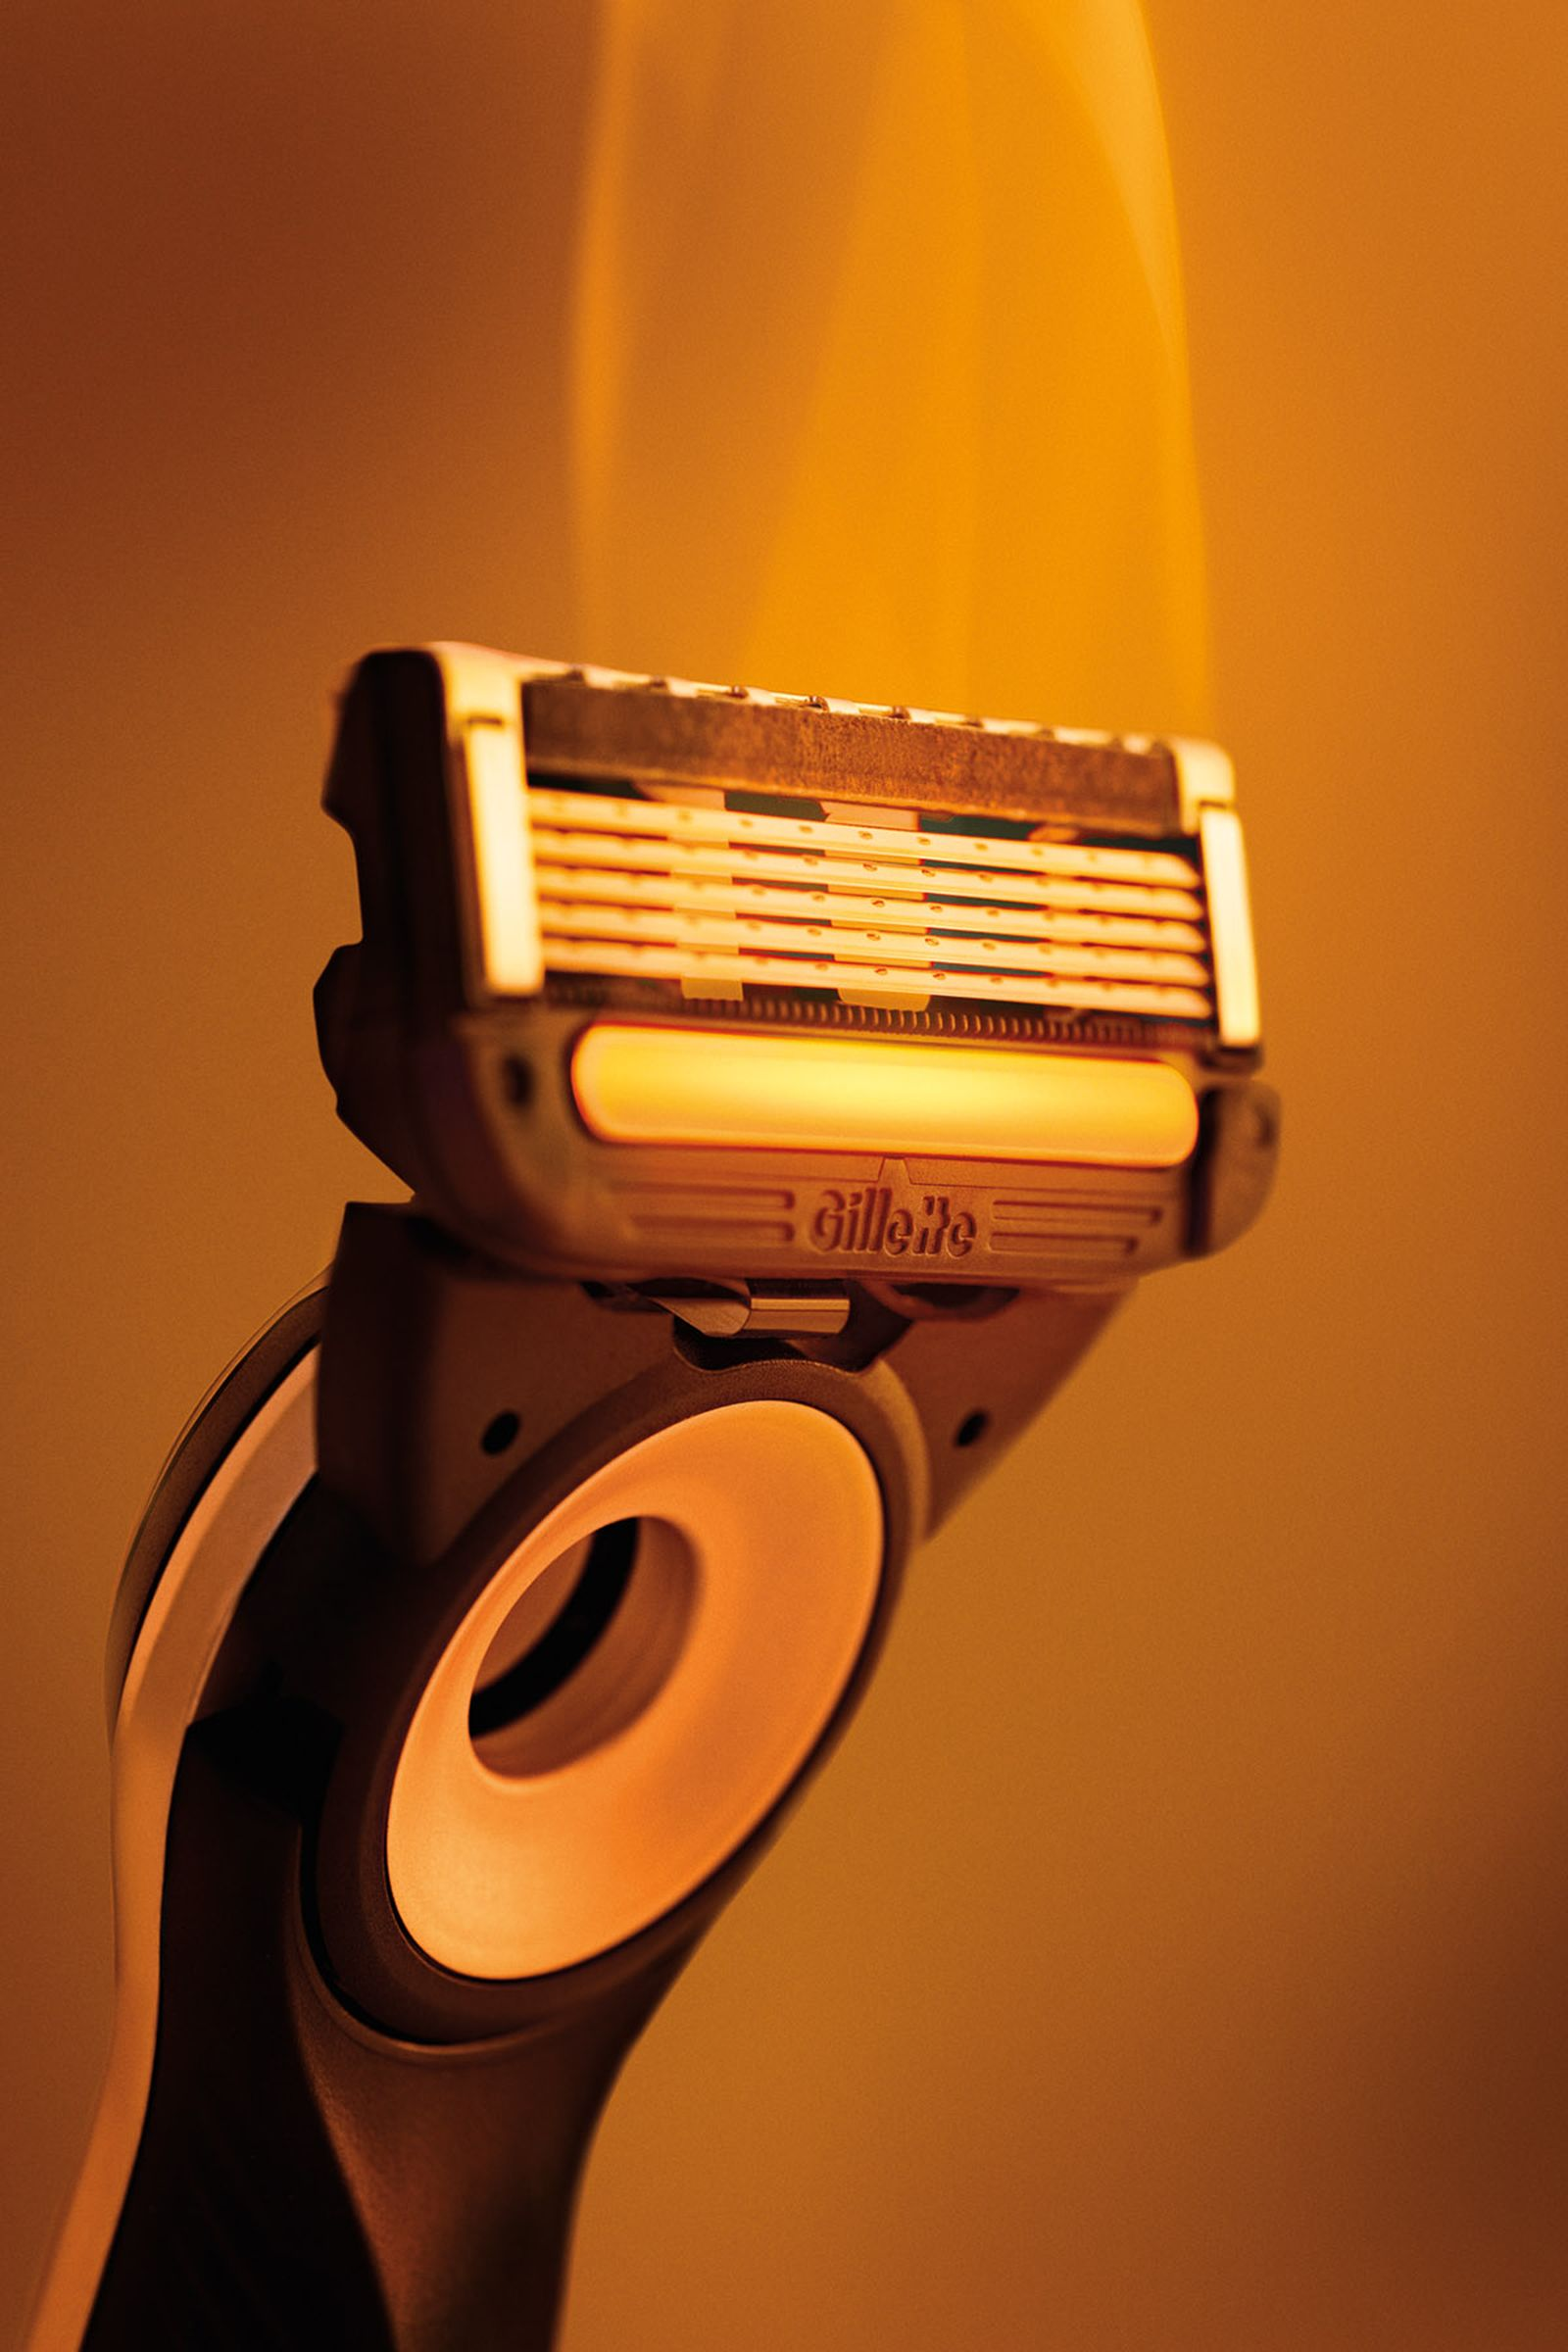 The stainless steel warming bar delivers heat to create the feeling of a luxe hot towel shave.